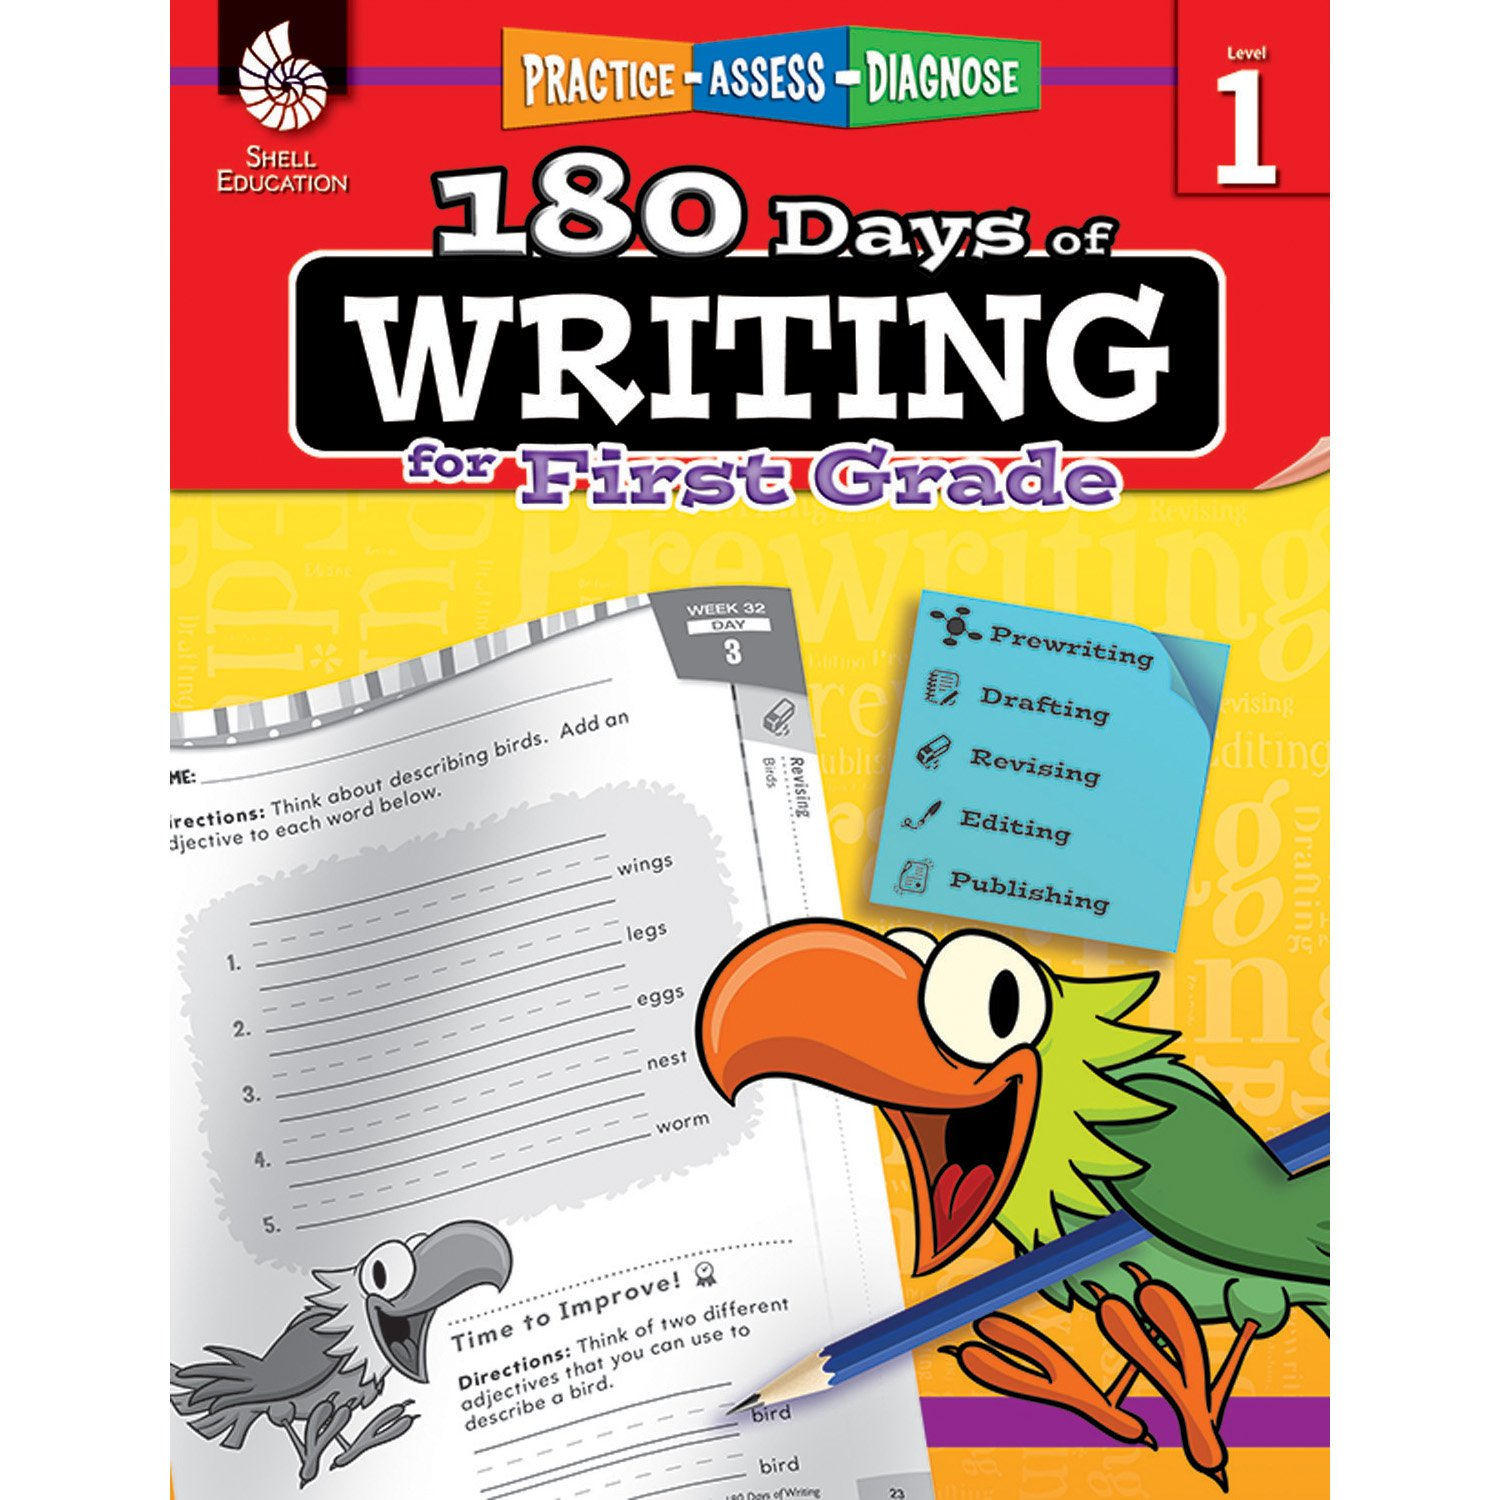 Amazon.com: 180 Days of Writing for First Grade - An Easy-to-Use ...